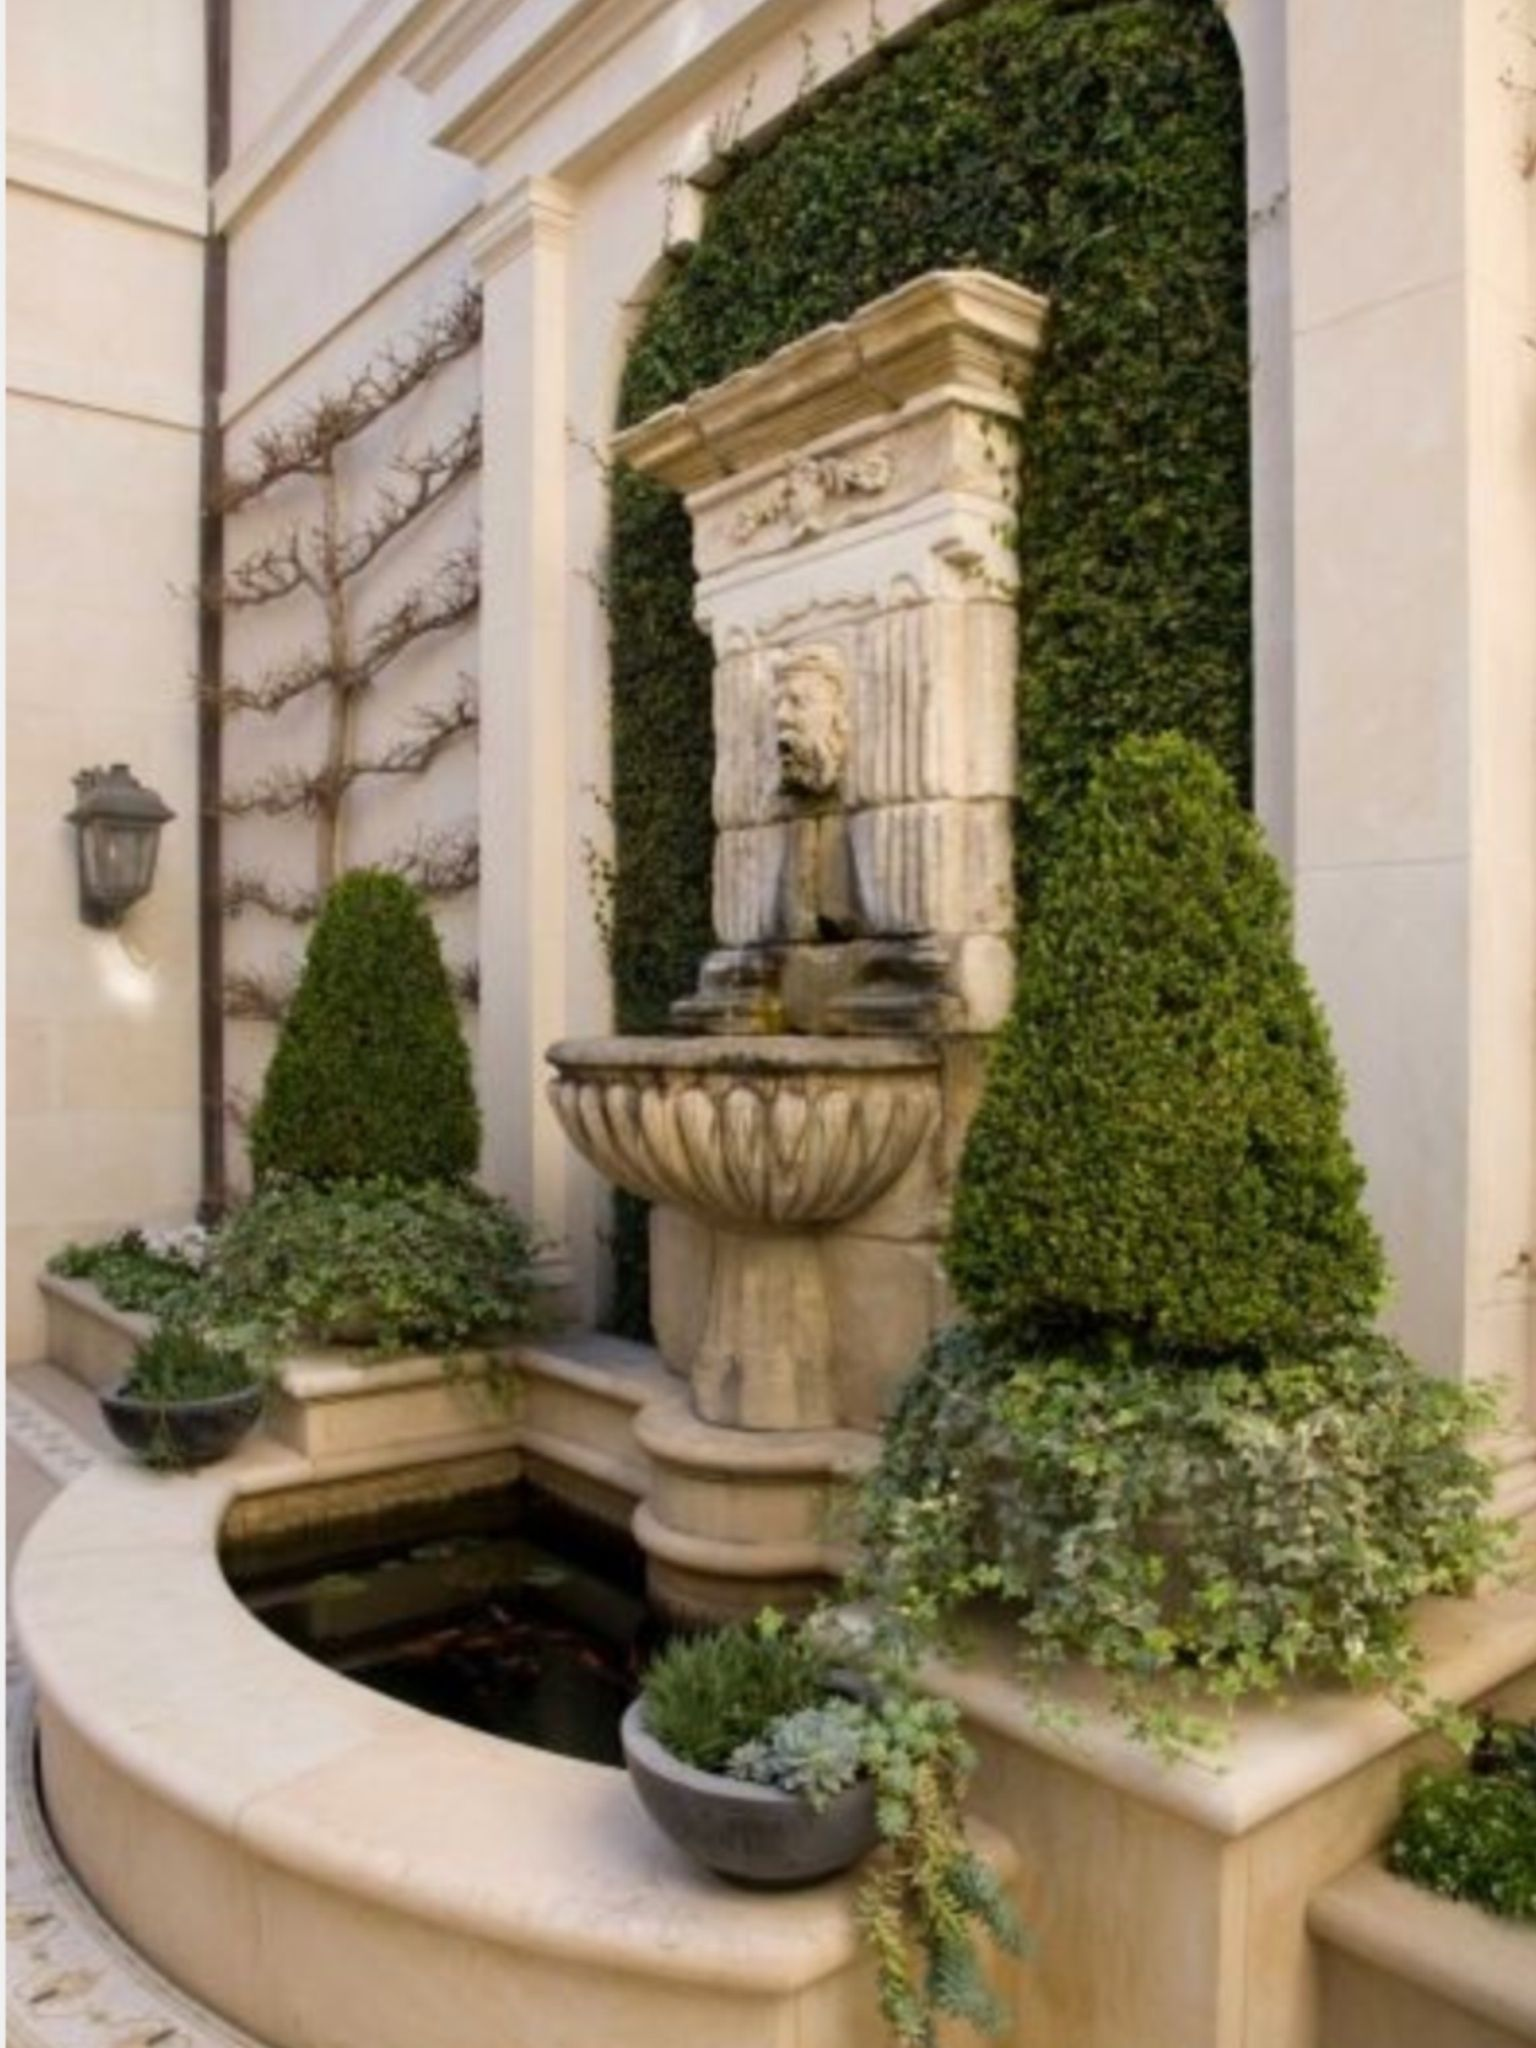 Wall Fountain In Courtyard Espalier And Pair Of Topiary